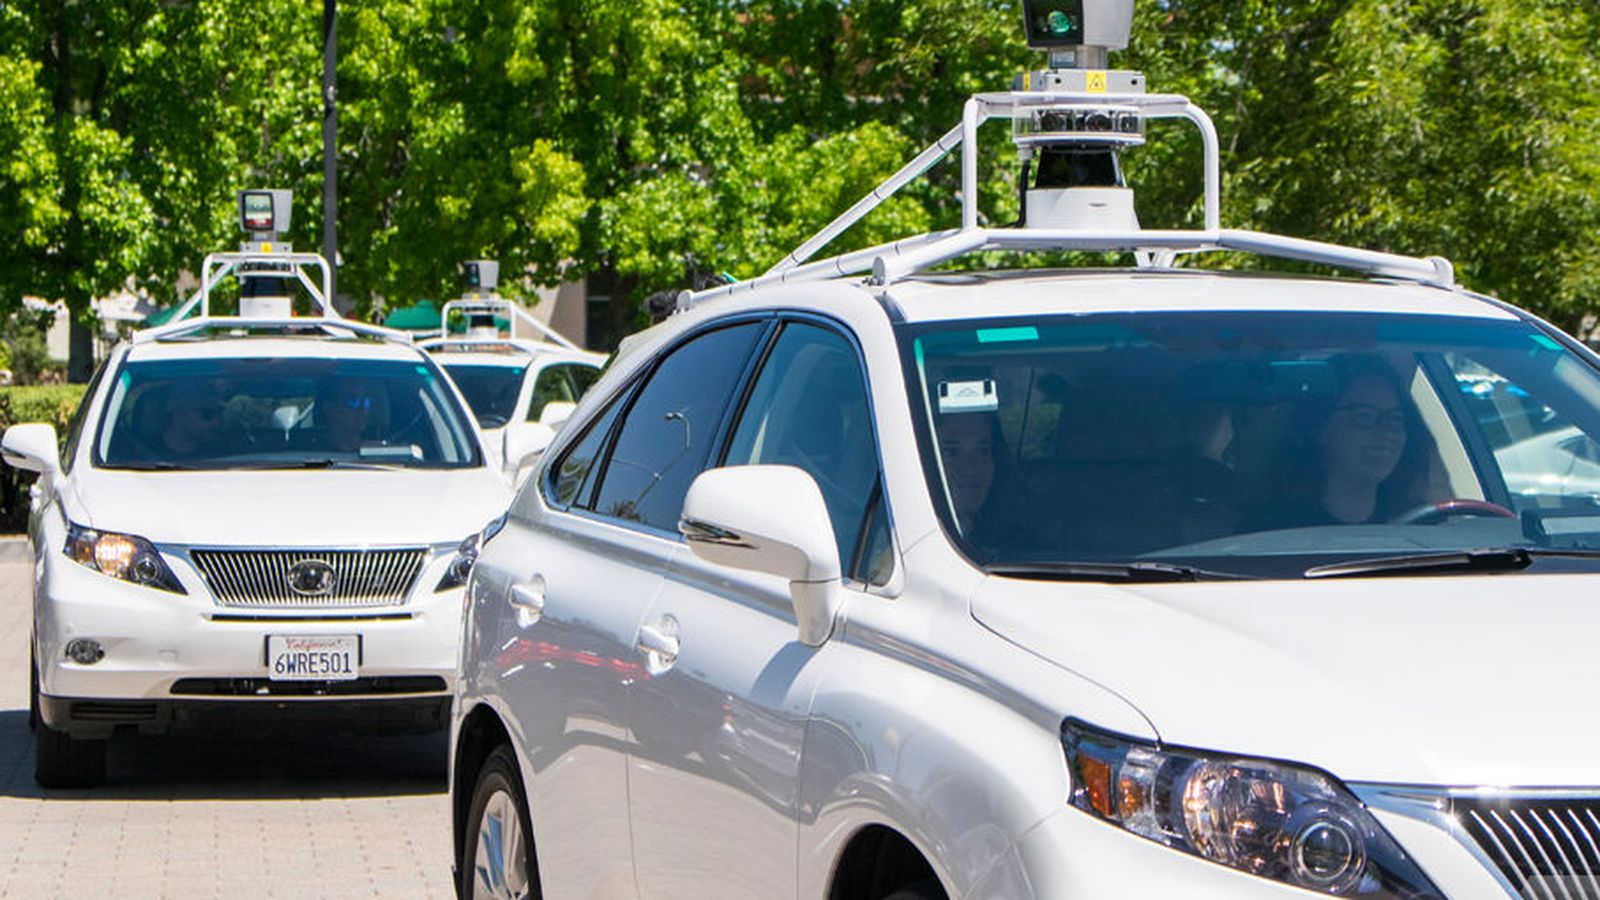 After two million miles, Google's robot car now drives better than a 16-year-old - Recode